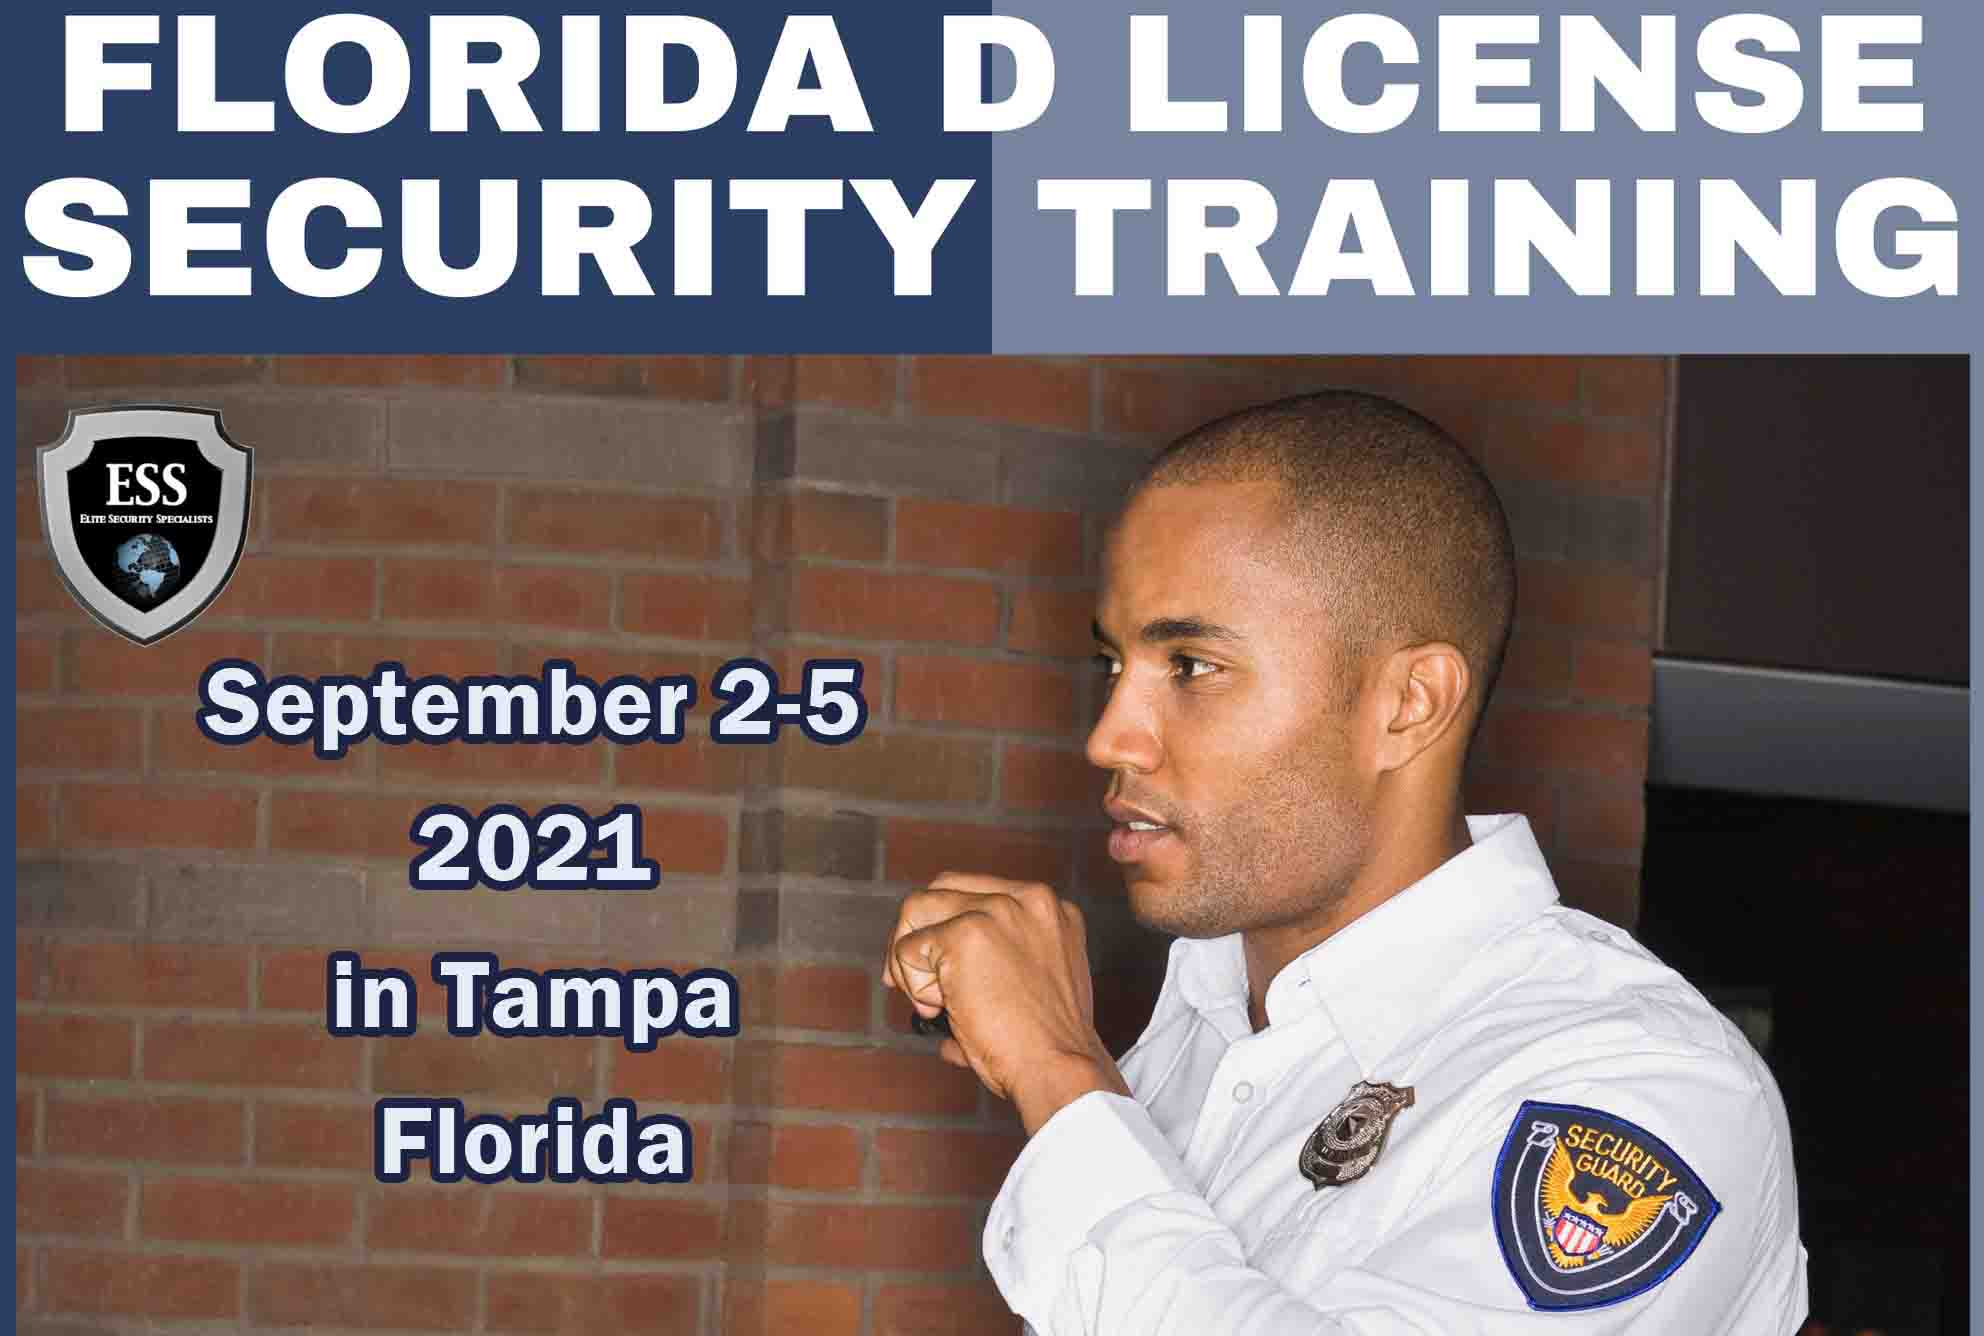 Florida D Security License Training in Tampa SEPT 1